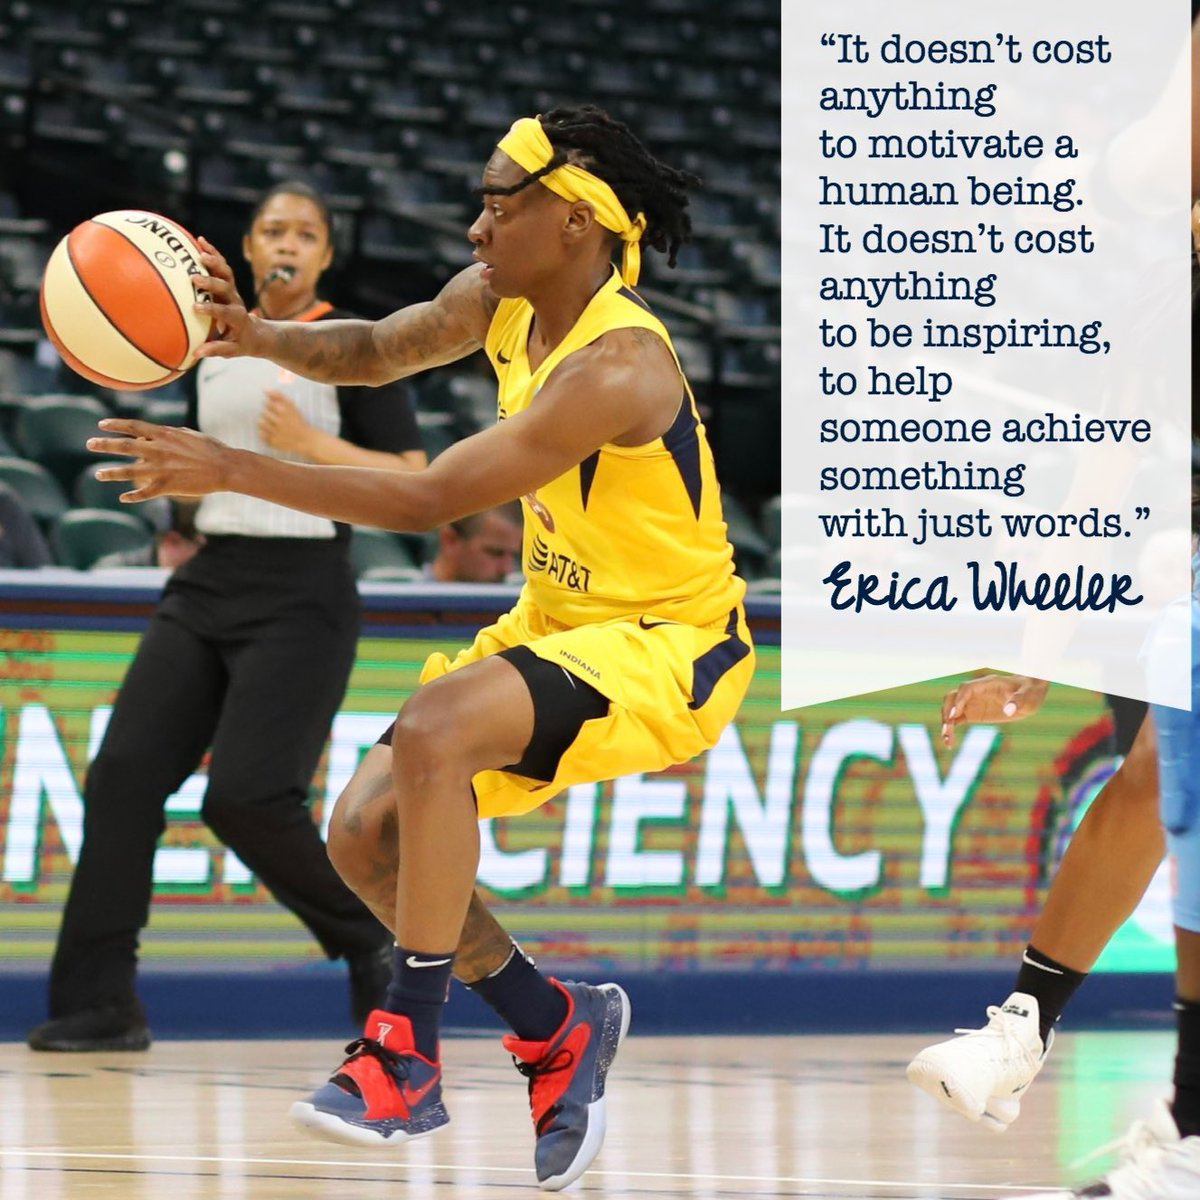 Life wisdom on being a positive presence in others' lives from @EWeezy_For3eezy. Image from Fever-Sky game 5-16.  #indianafever #fever20 #allforlove #wnba